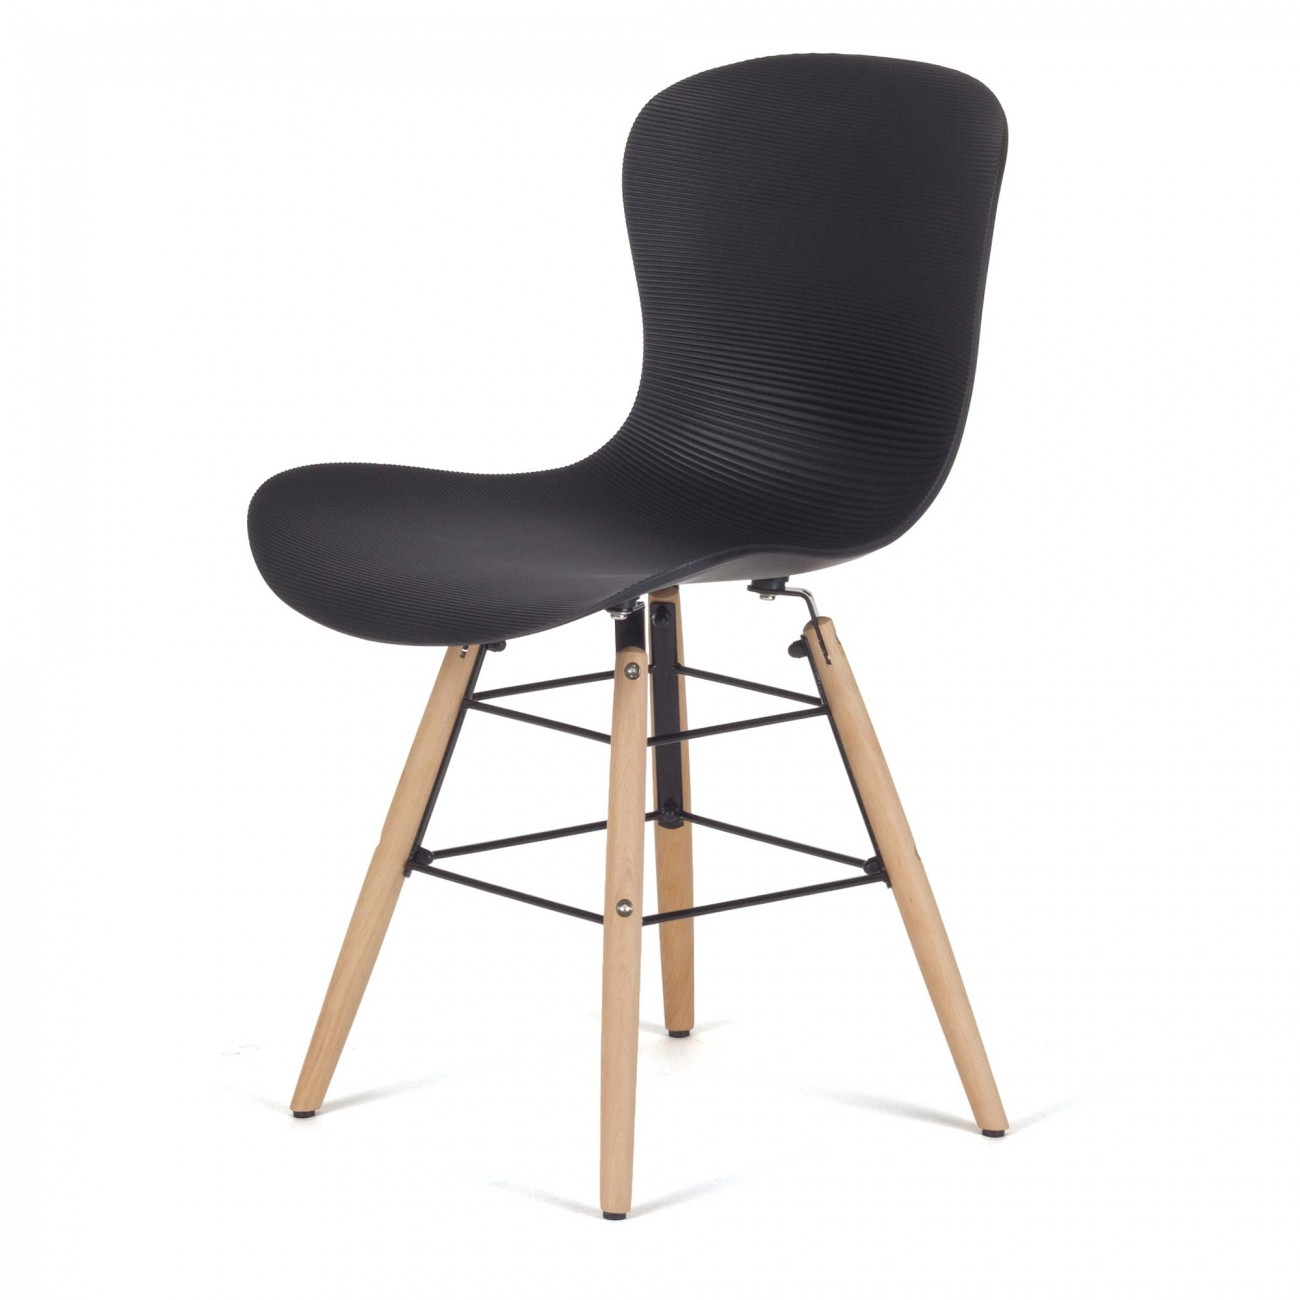 Neya ensemble de chaises de bureau nouveau design chaise for Chaise grillage design